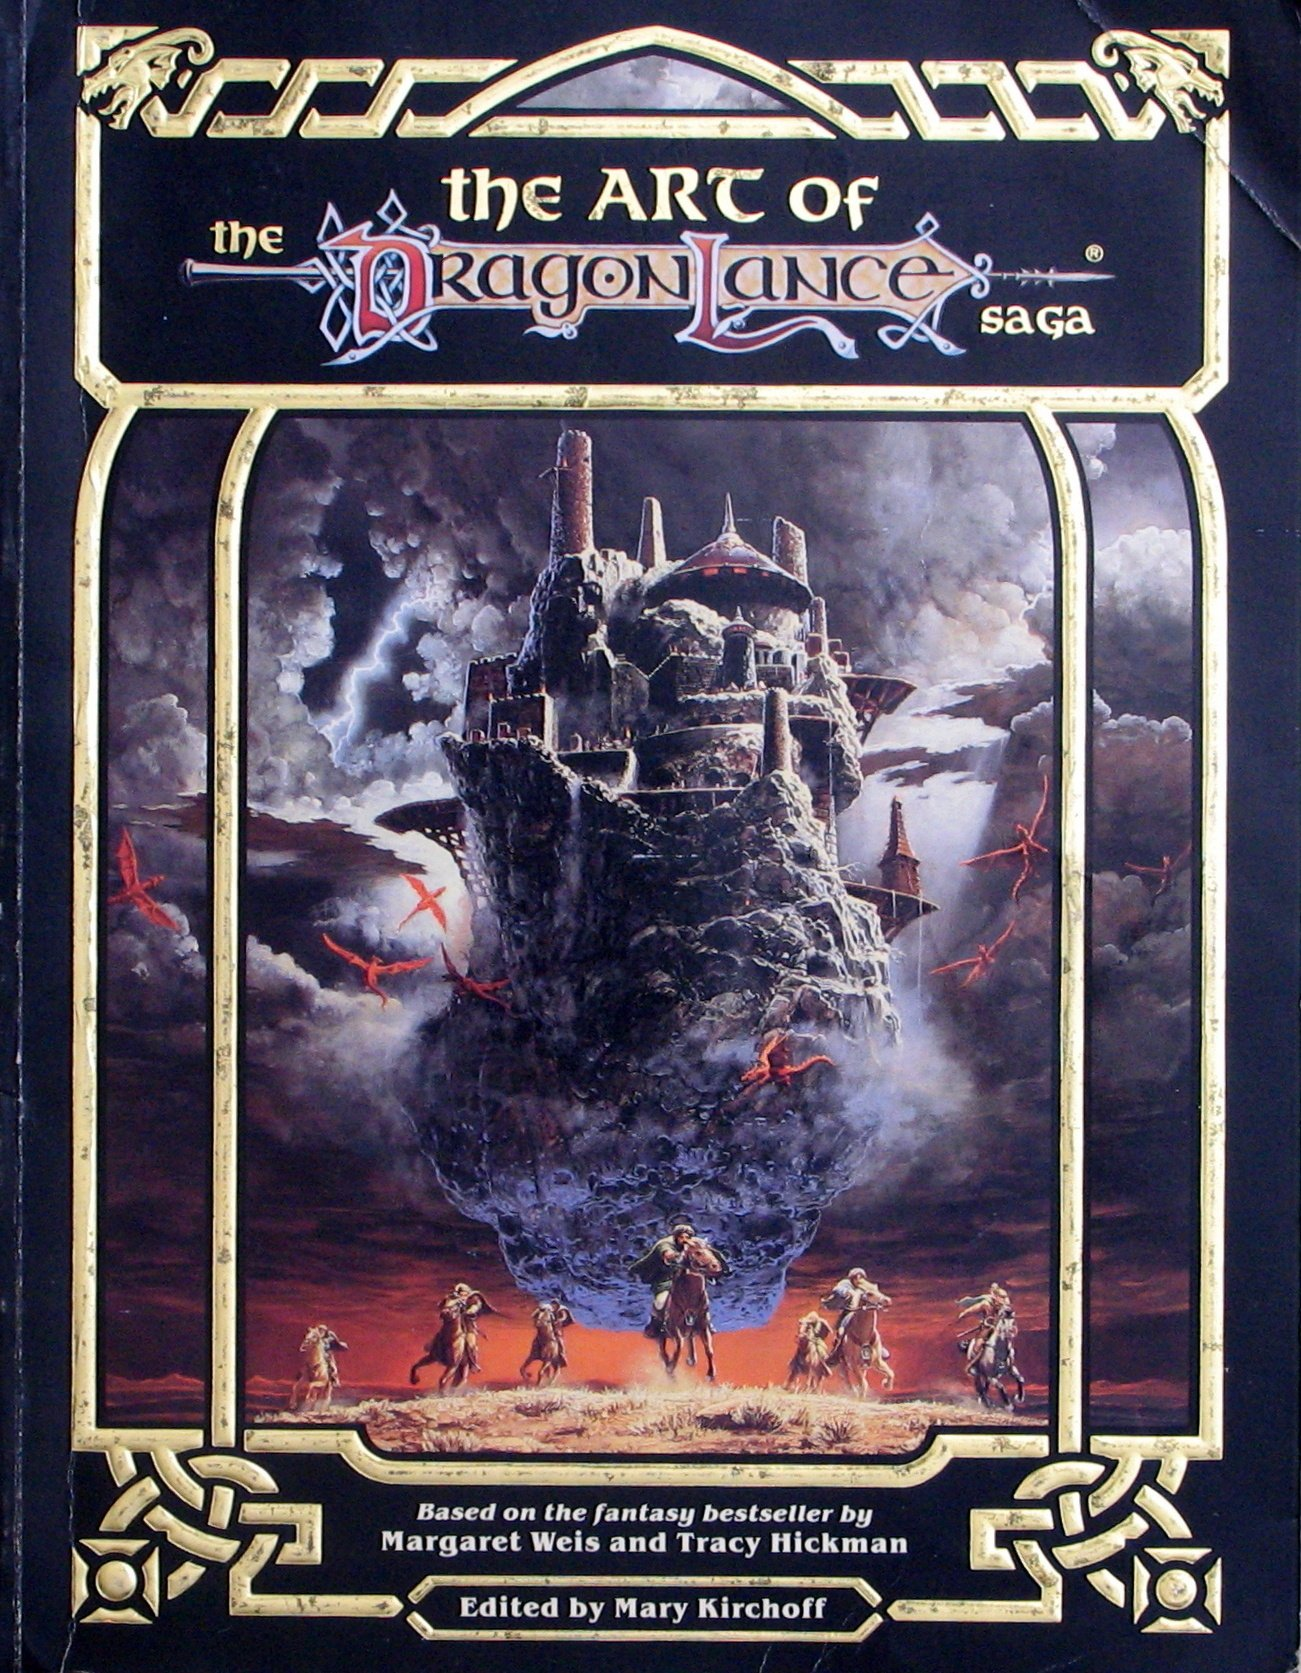 The Art of the Dragonlance Saga: Based on the Fantasy Bestseller by  Margaret Weis and Tracy Hickmann: Amazon.co.uk: Mary Kirchoff:  9780880384476: Books